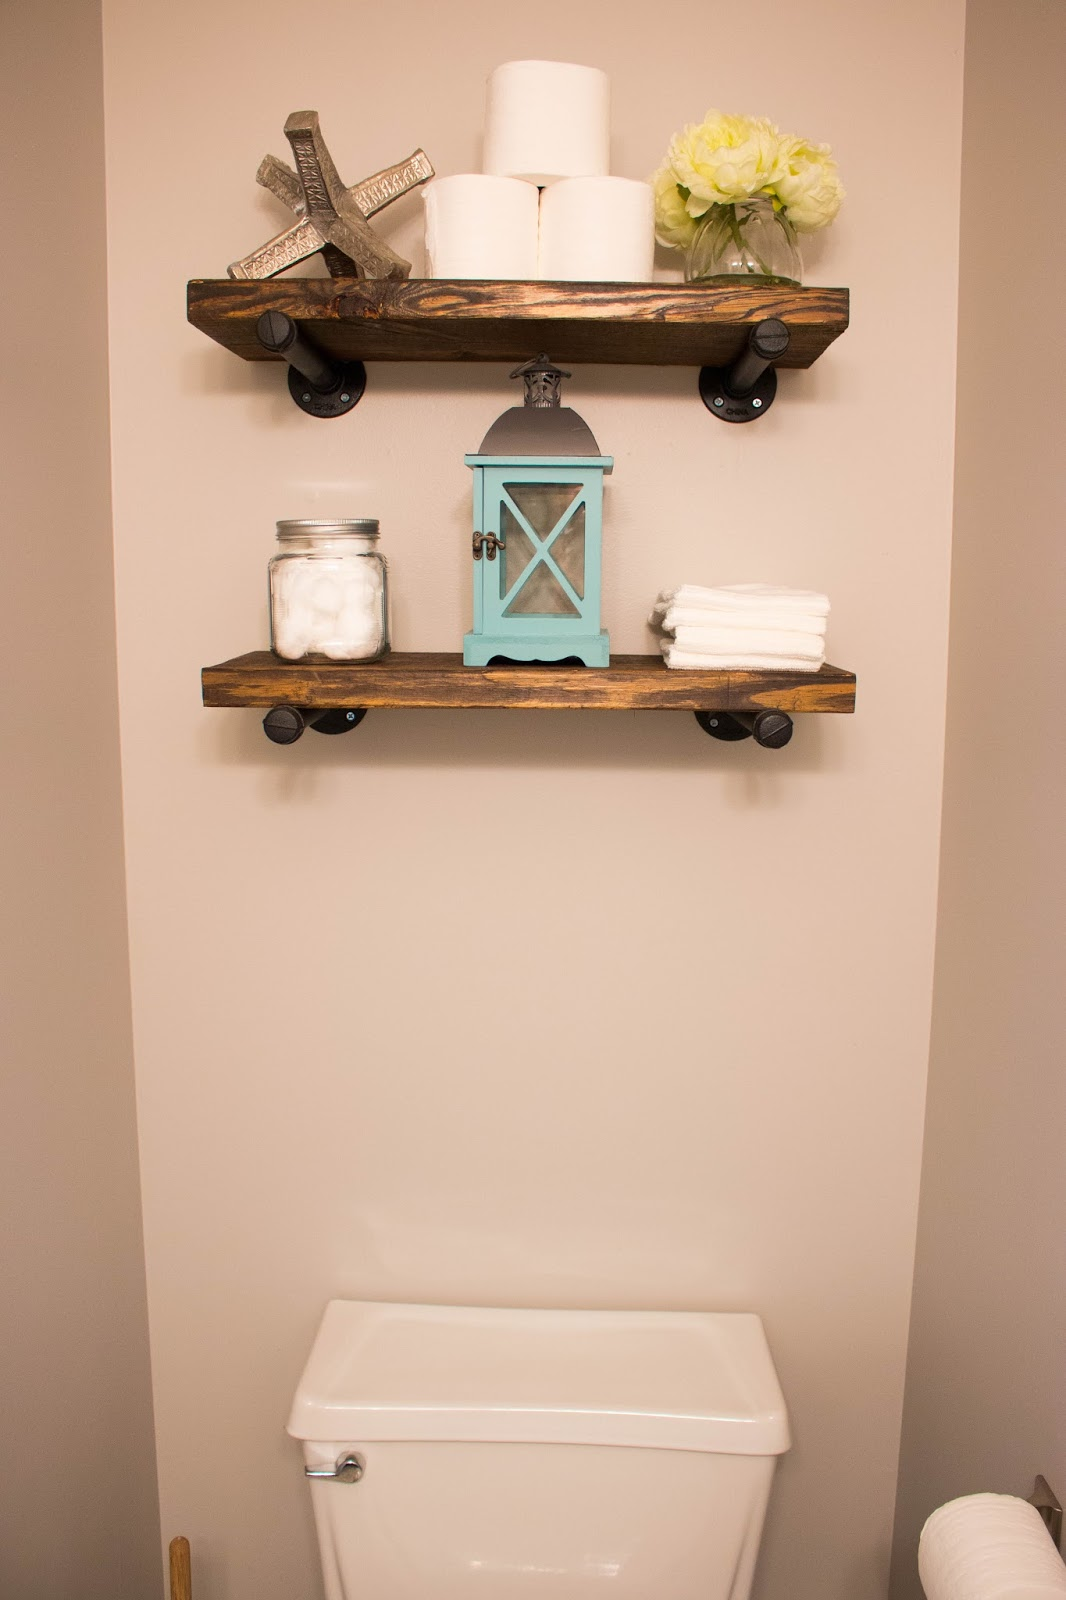 The Powder Bathroom| How to Make Industrial Floating ...